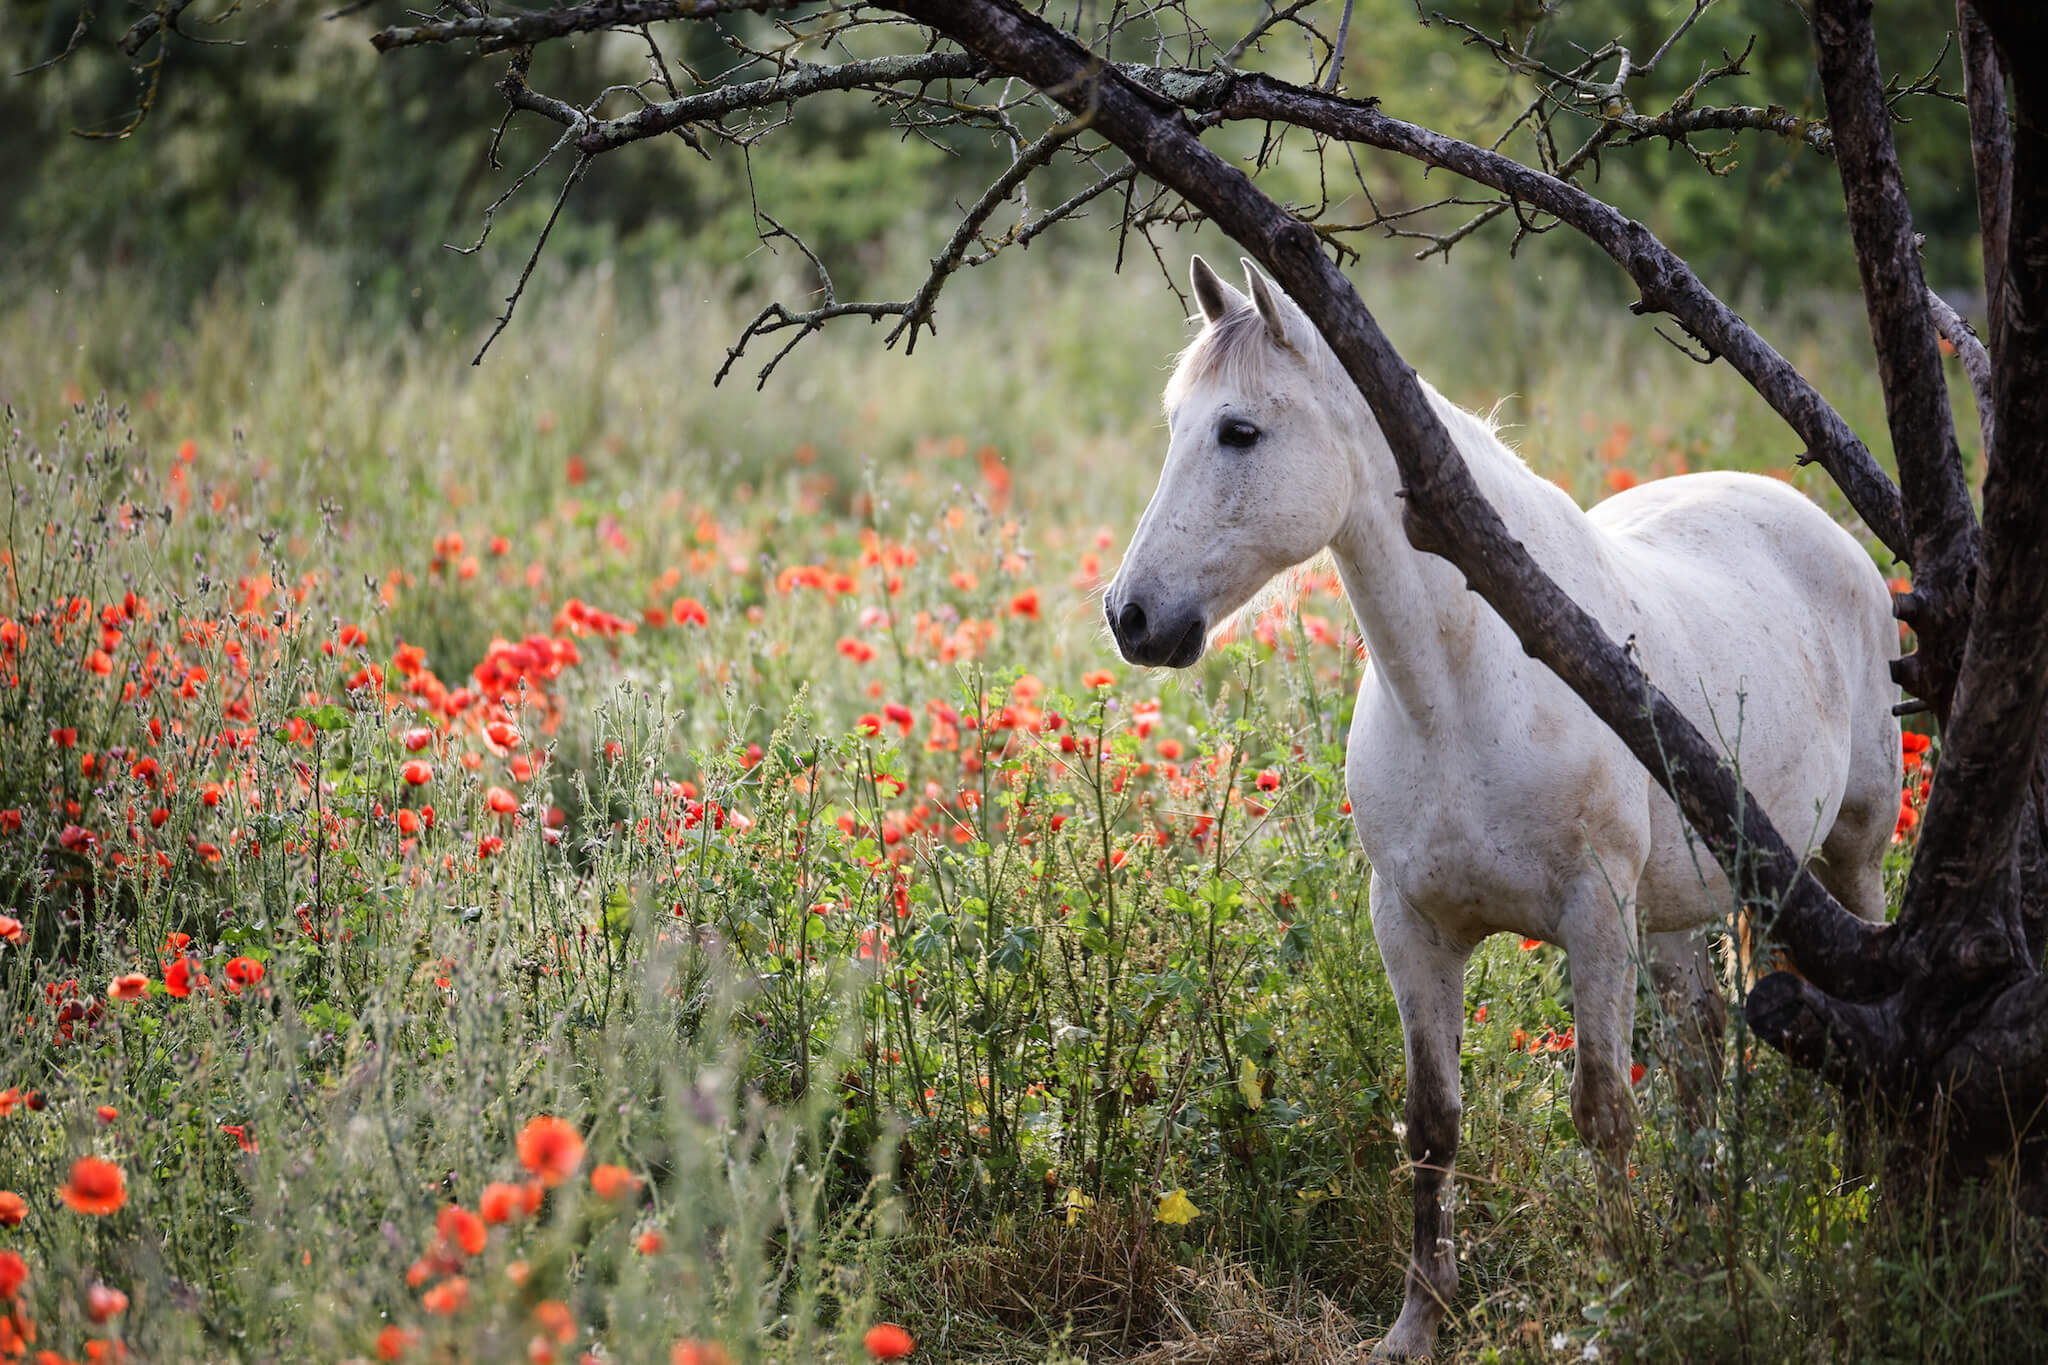 A beautiful white horse, native to the area, stands in a field of flowers in Camargue.